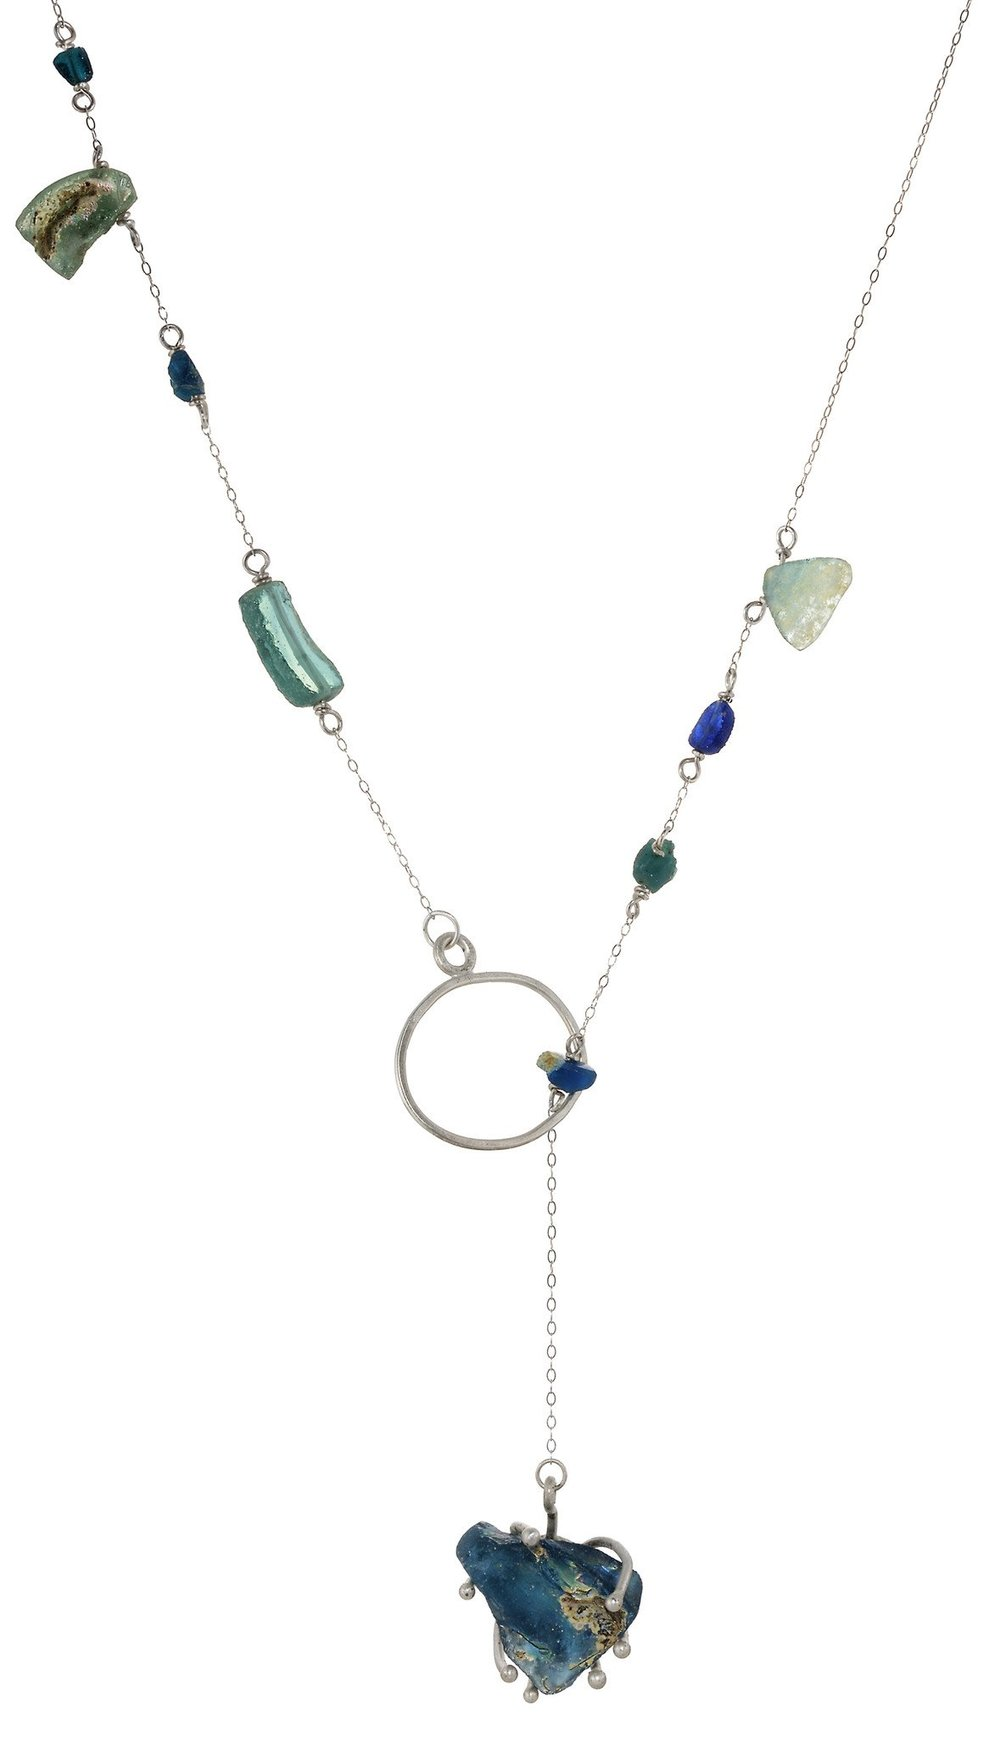 AMANDA IRIDESCENT ANCIENT ROMAN GLASS LARIAT. Tara Hutch. $229.